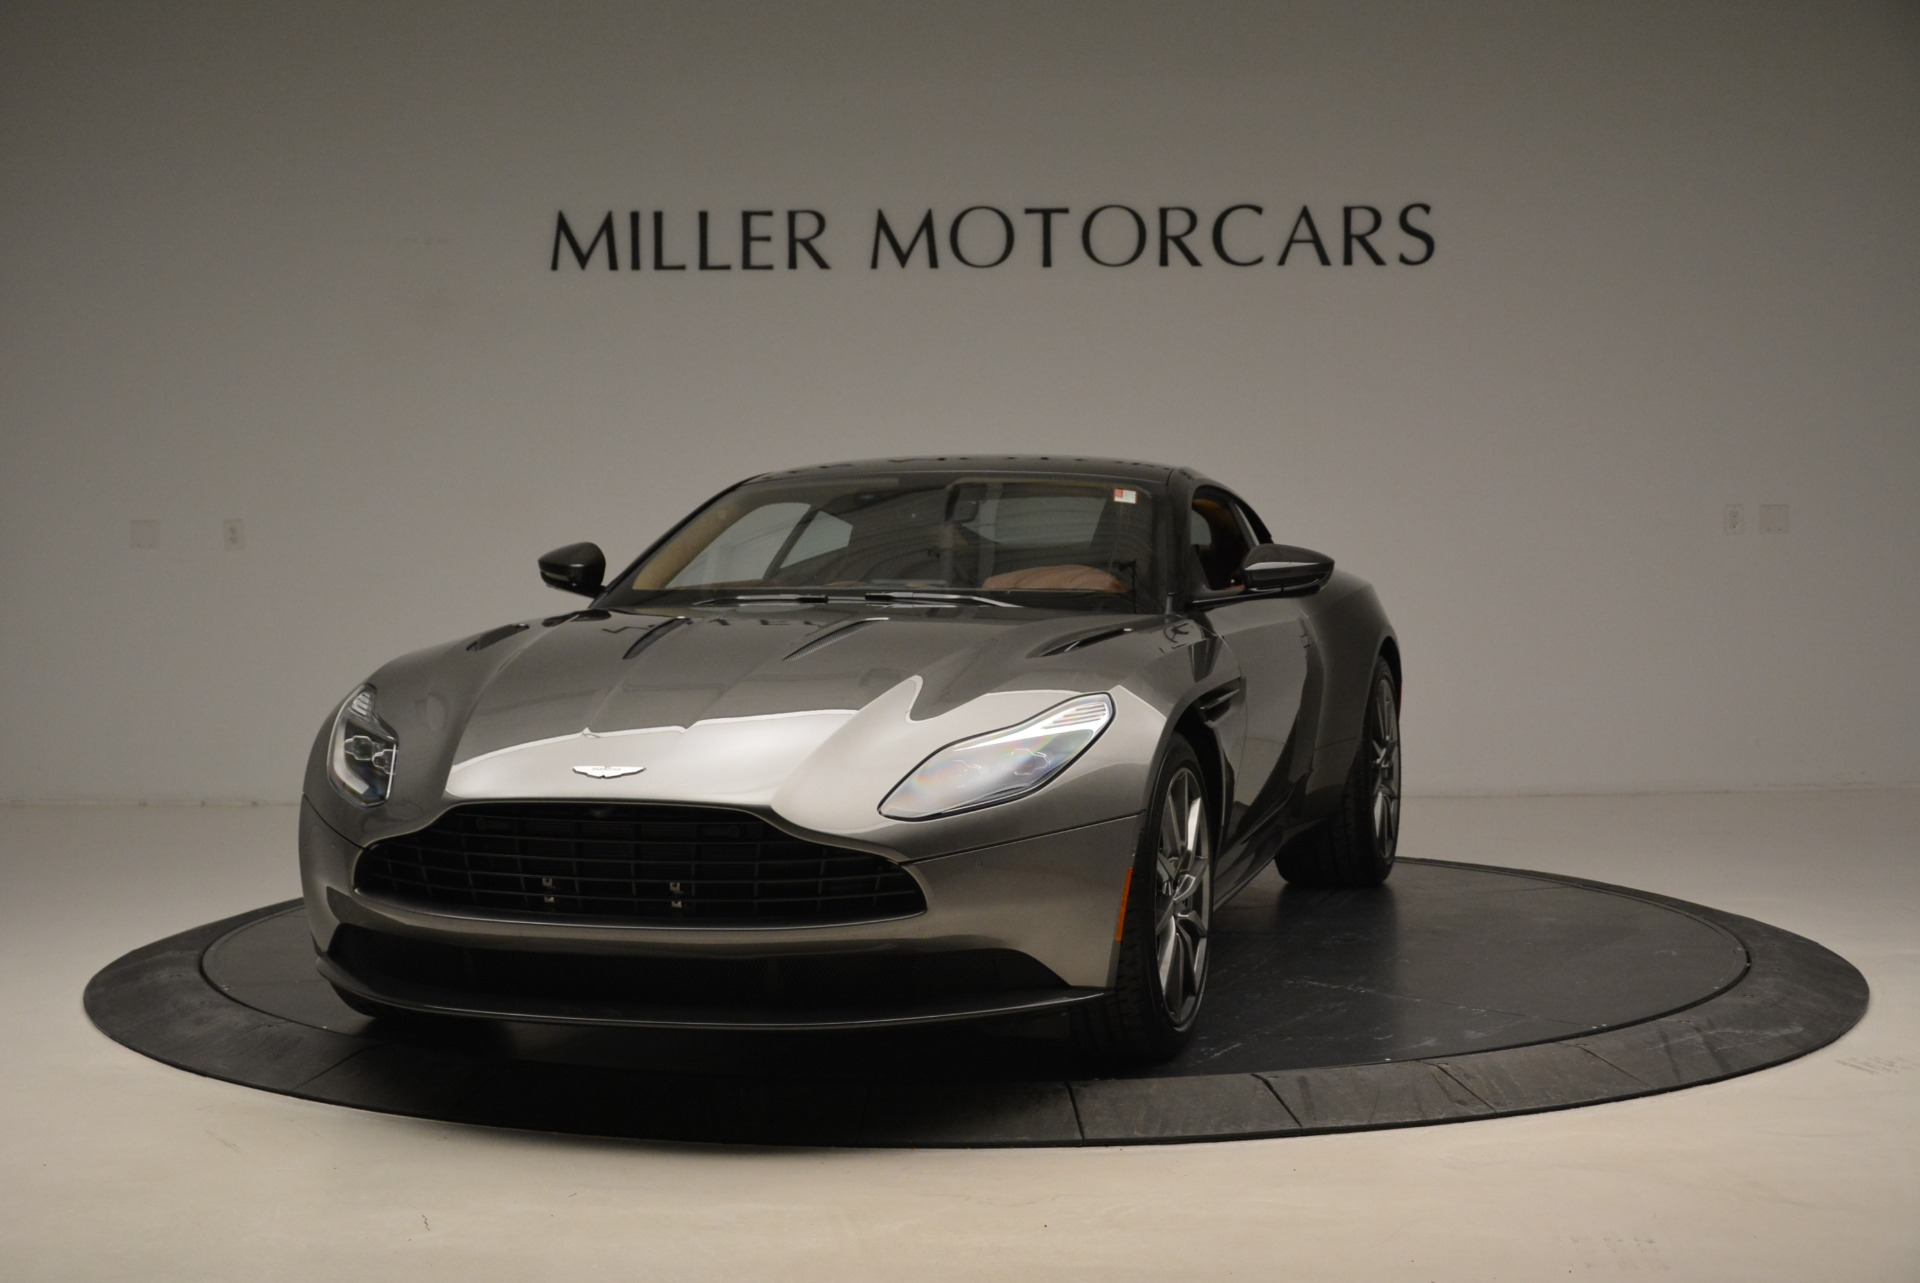 New 2018 Aston Martin DB11 V12 Coupe for sale Sold at Alfa Romeo of Westport in Westport CT 06880 1